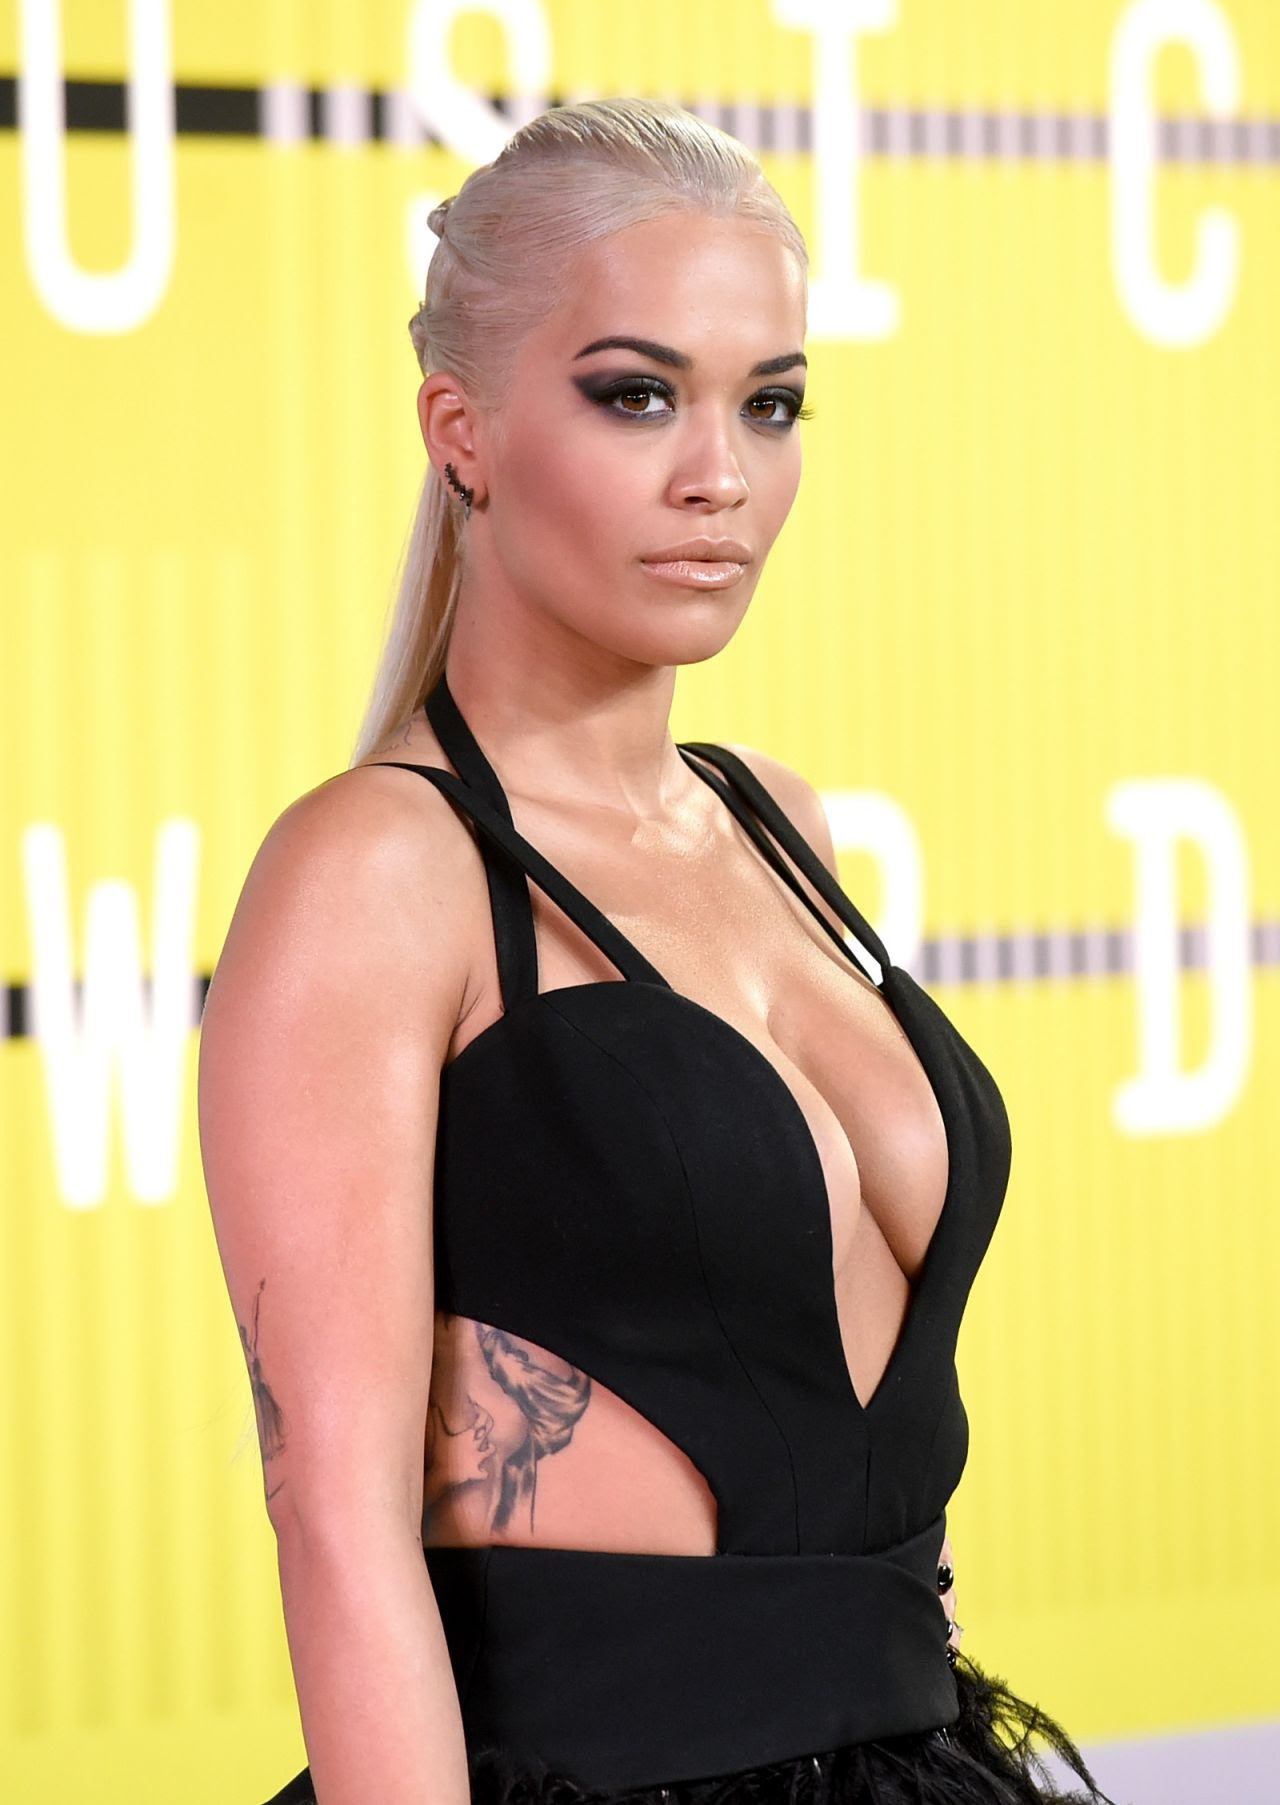 http://celebmafia.com/wp-content/uploads/2015/08/rita-ora-2015-mtv-video-music-awards-at-microsoft-theater-in-los-angeles_12.jpg